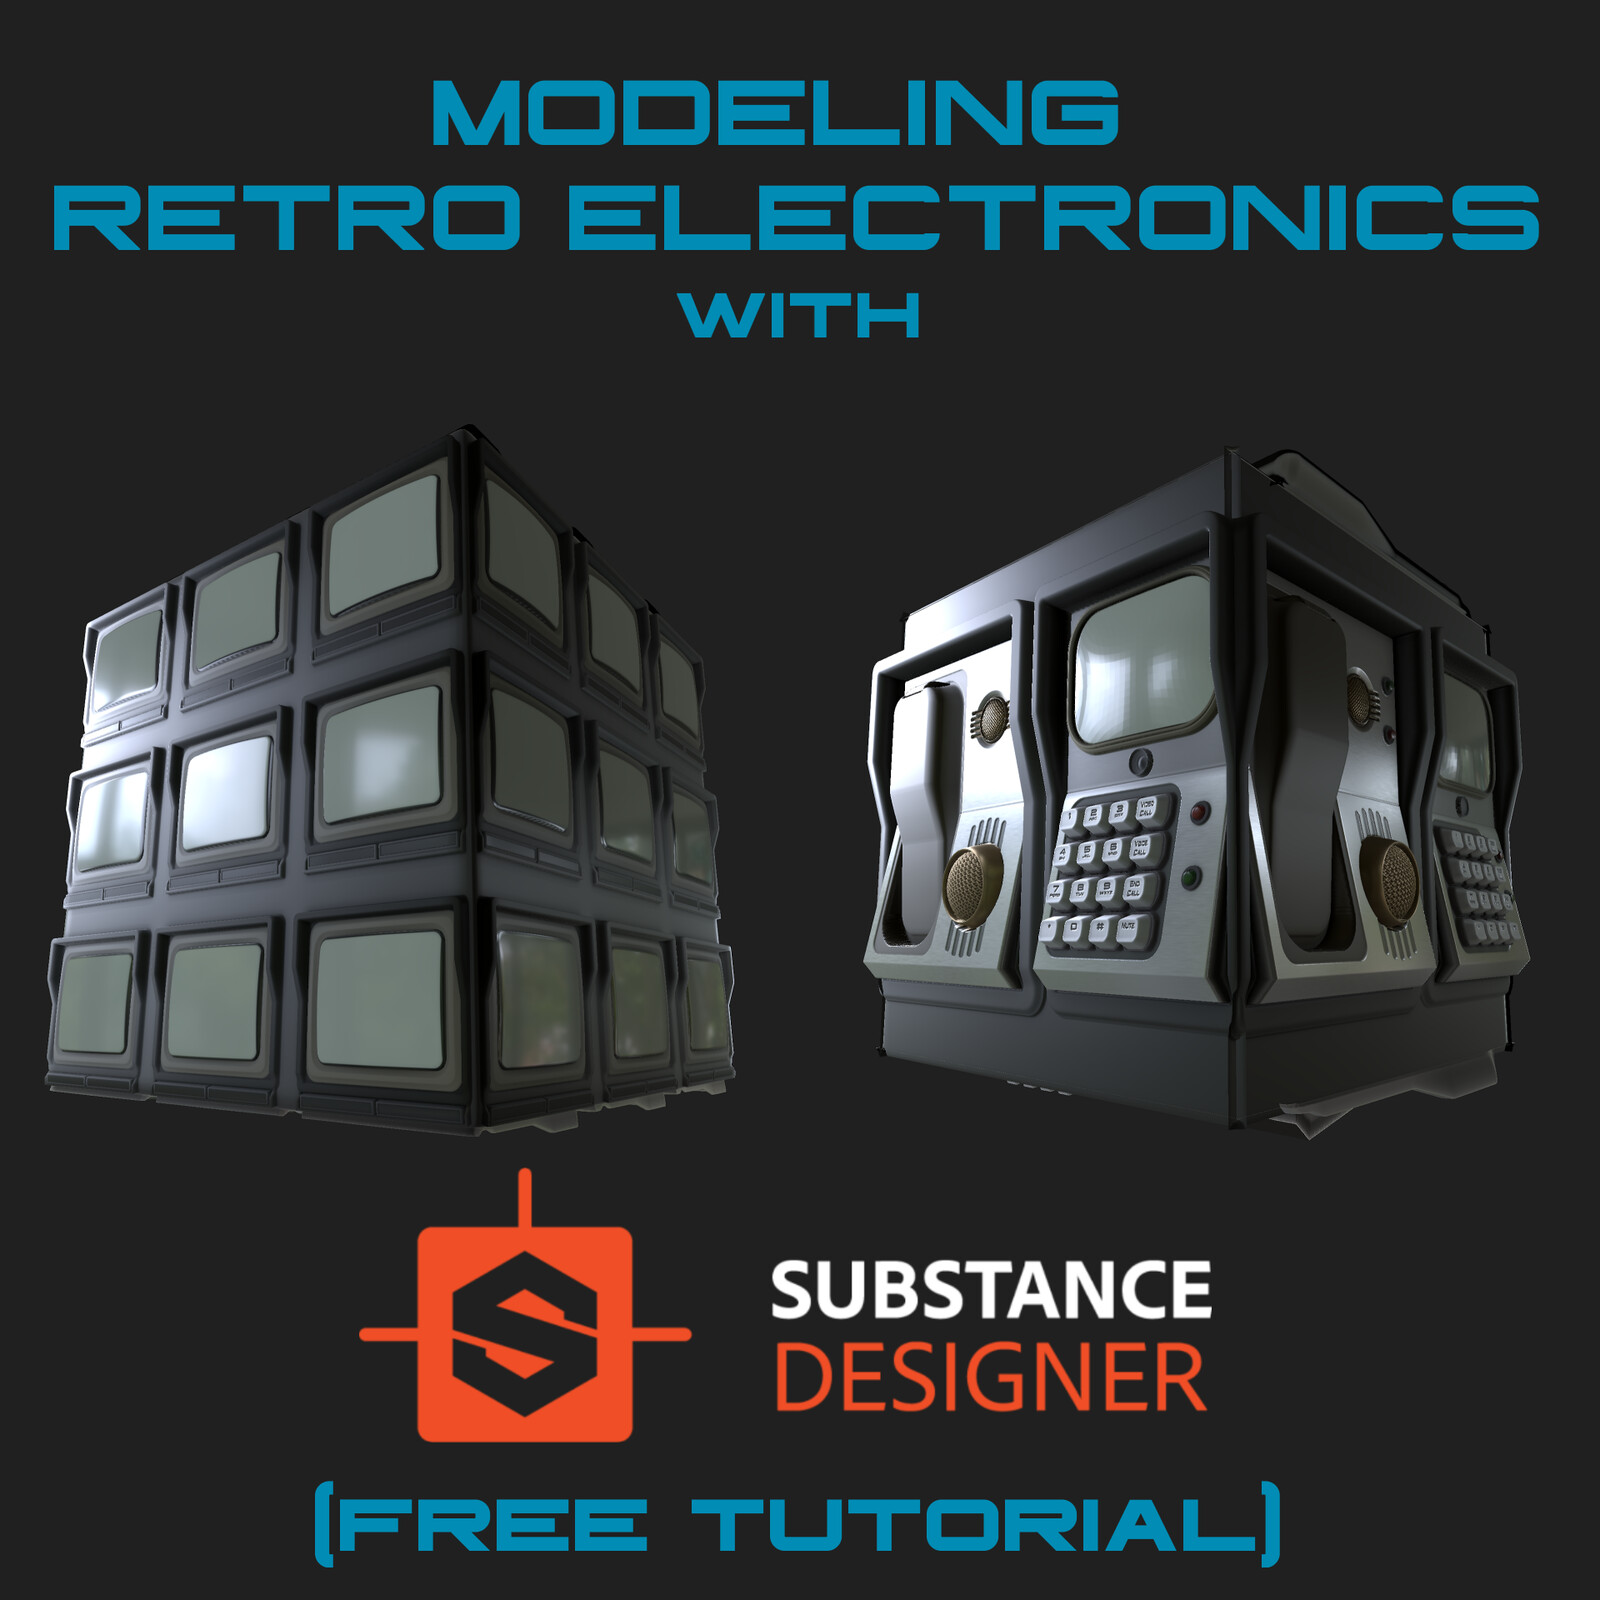 Substance Designer Tutorial - Modeling Retro Electronics